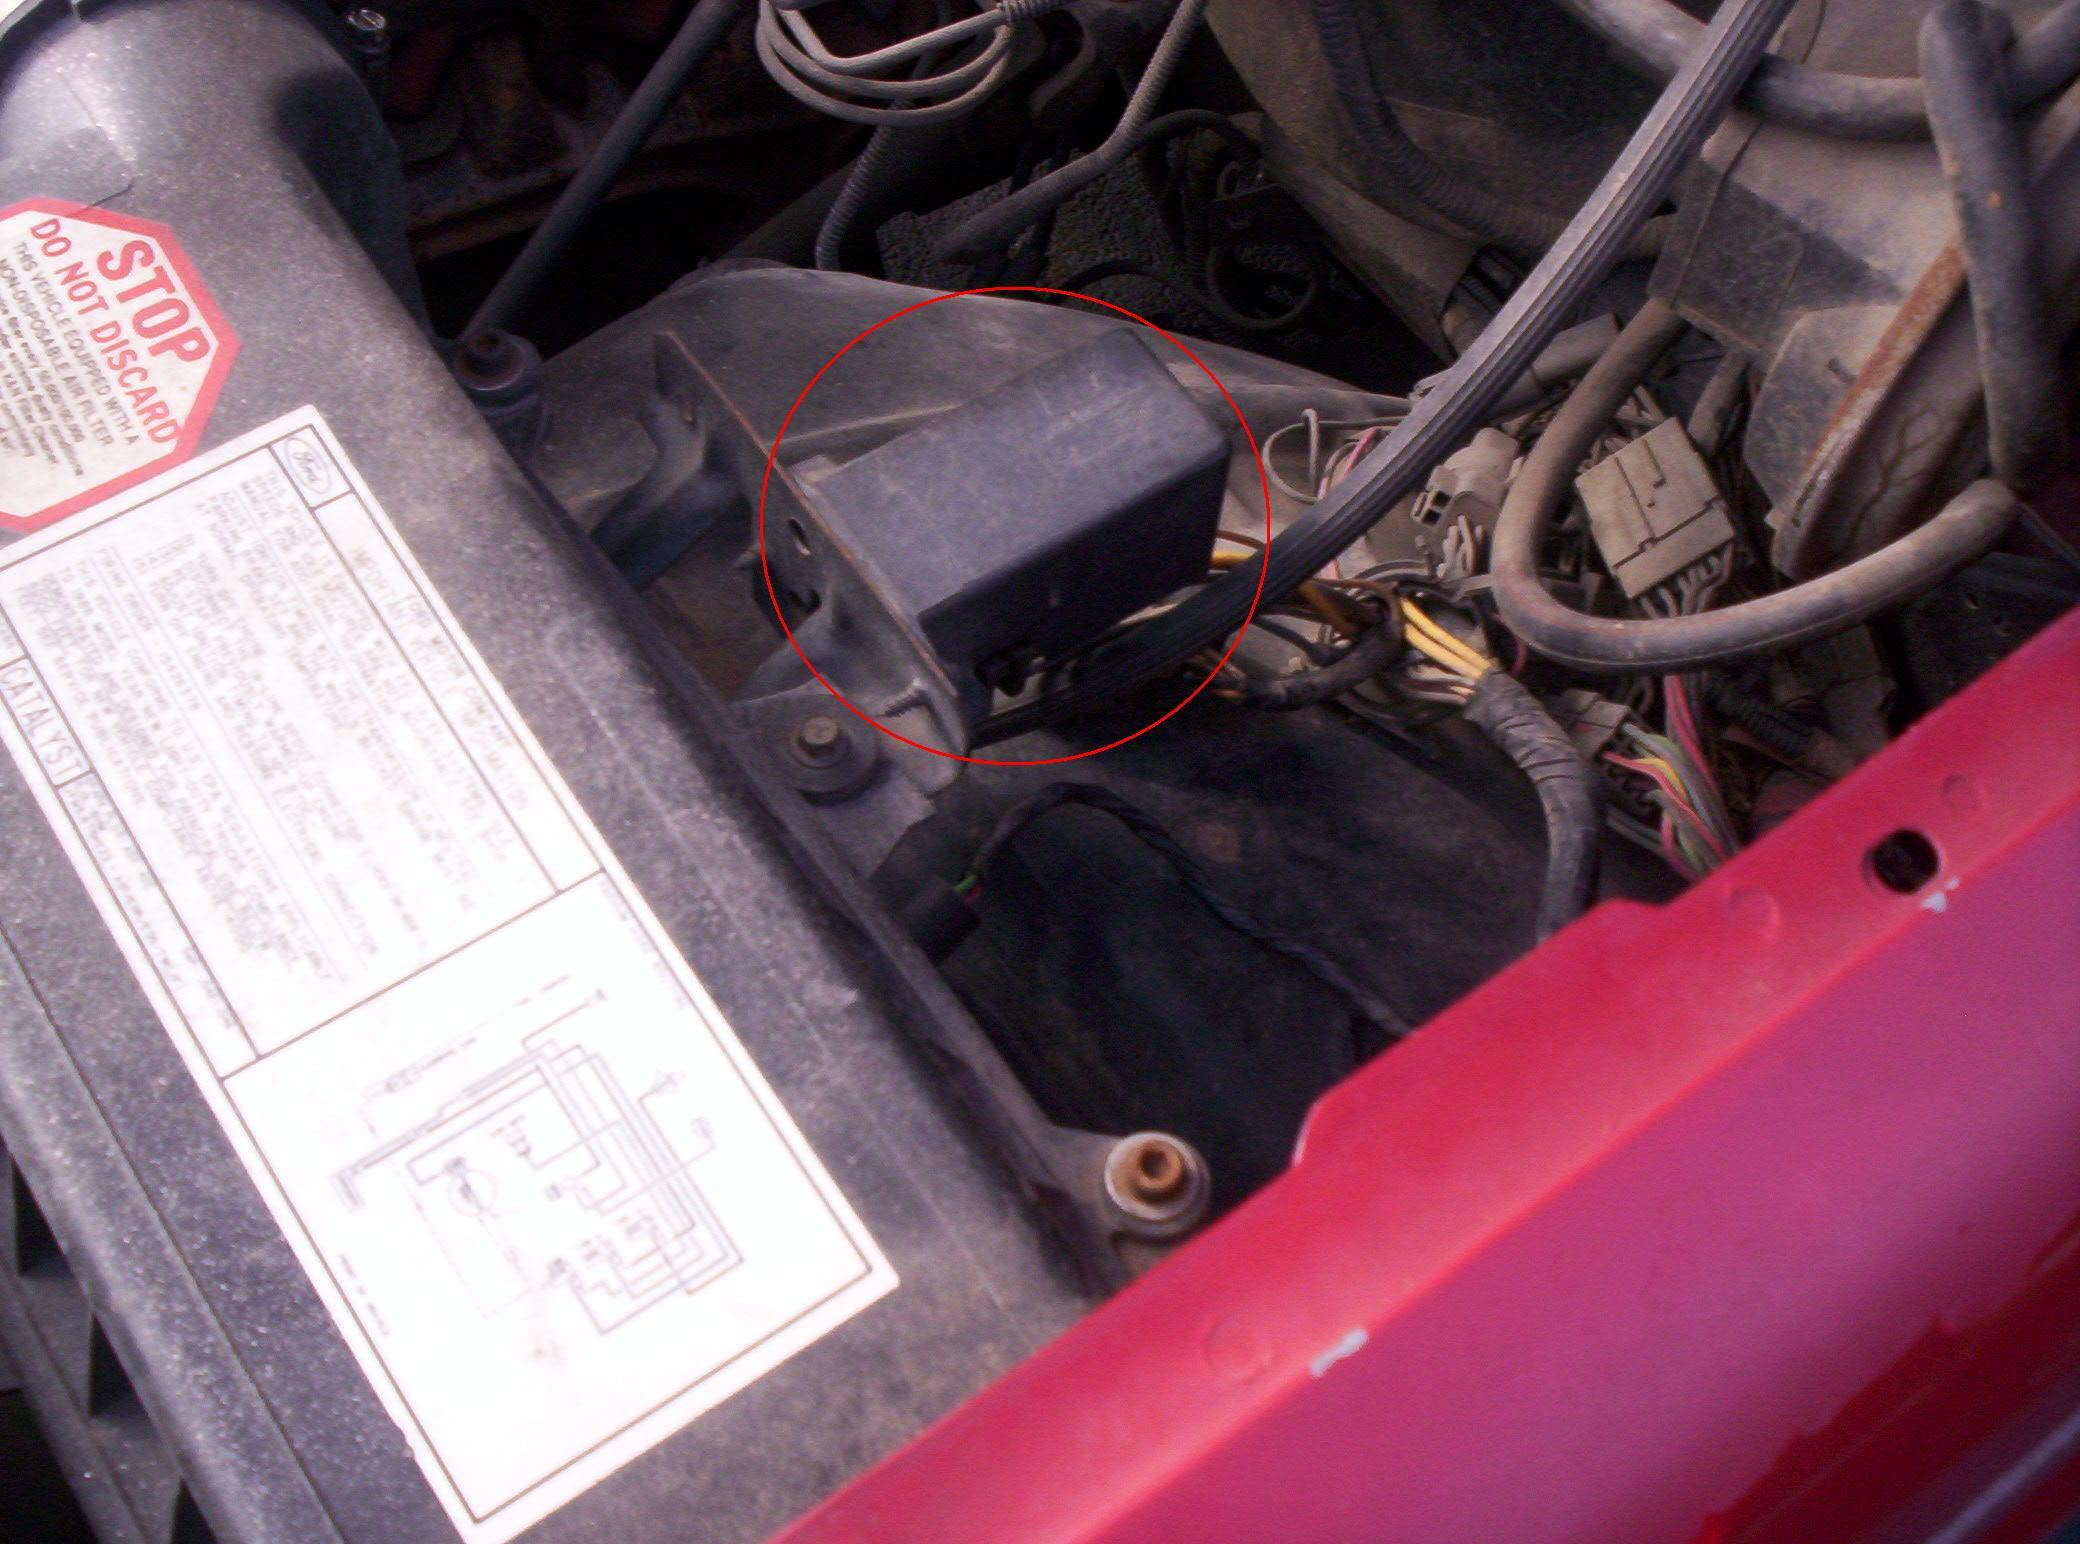 88 ford f 150 fuel pump wiring diagram auto electrical wiring 1991 ford f150 302 with dual tanks truck set about 4 months and rh justanswer com 1990 ford f 150 fuel system diagram 1989 ford f 150 fuel system diagram publicscrutiny Images